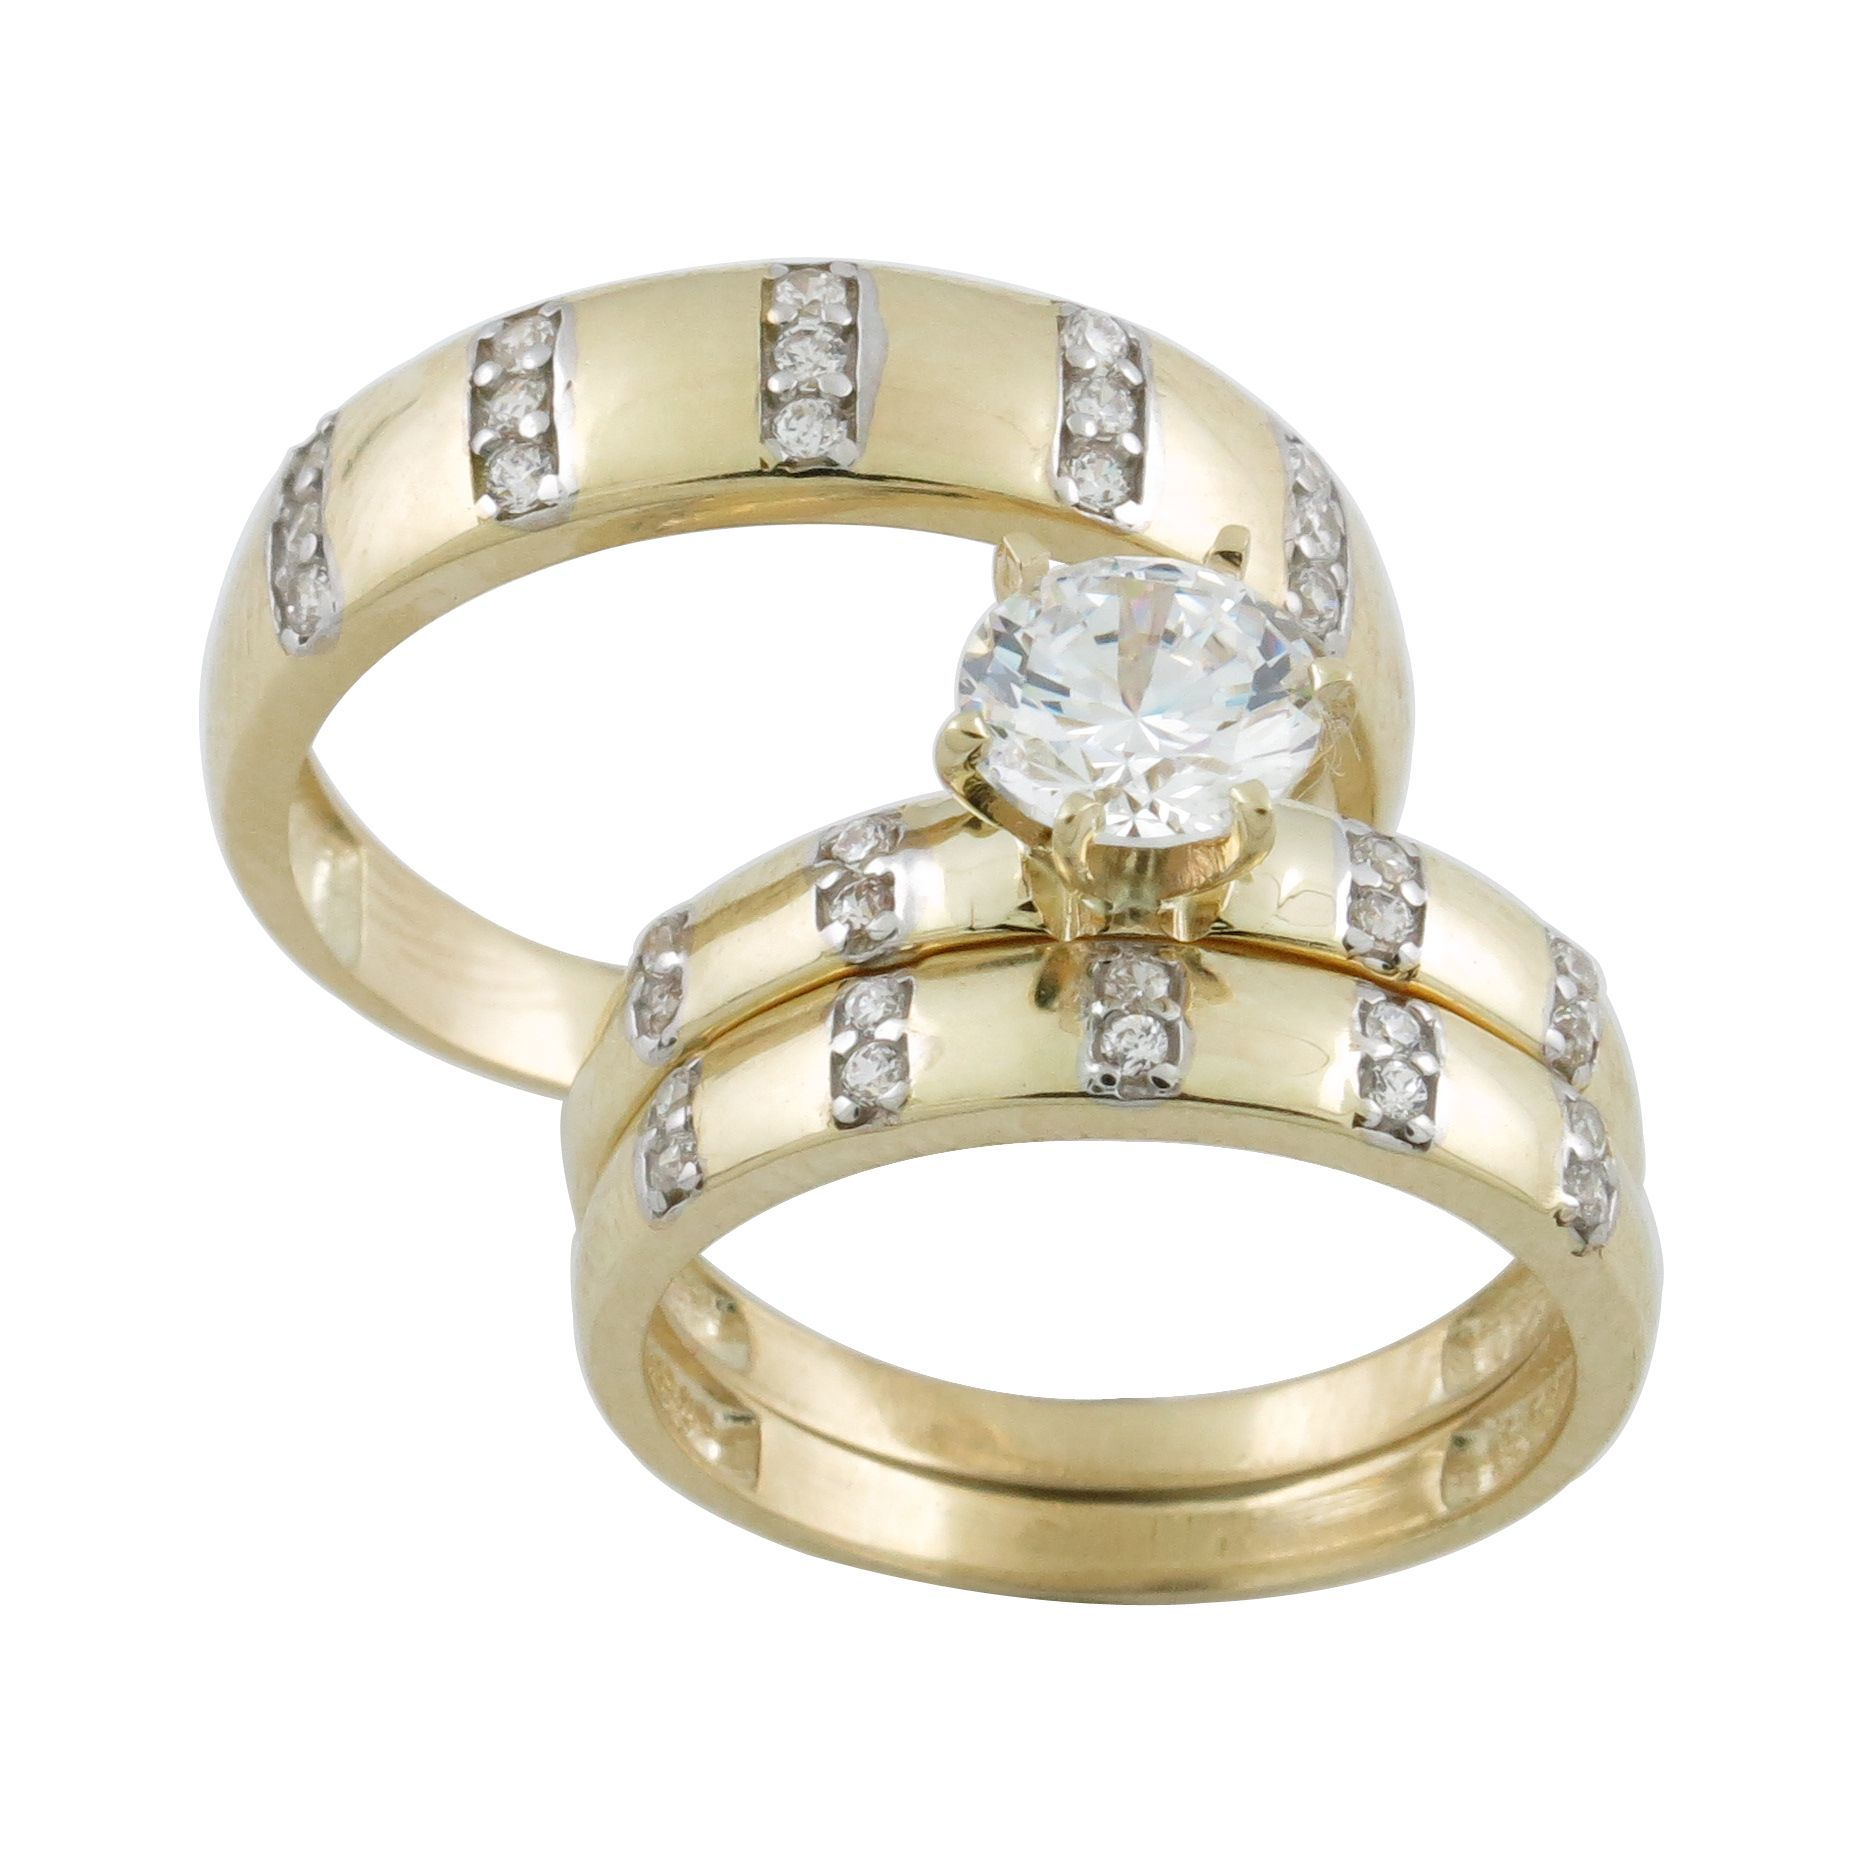 10k Gold Cubic Zirconia Matching His and Hers Bridal style Ring